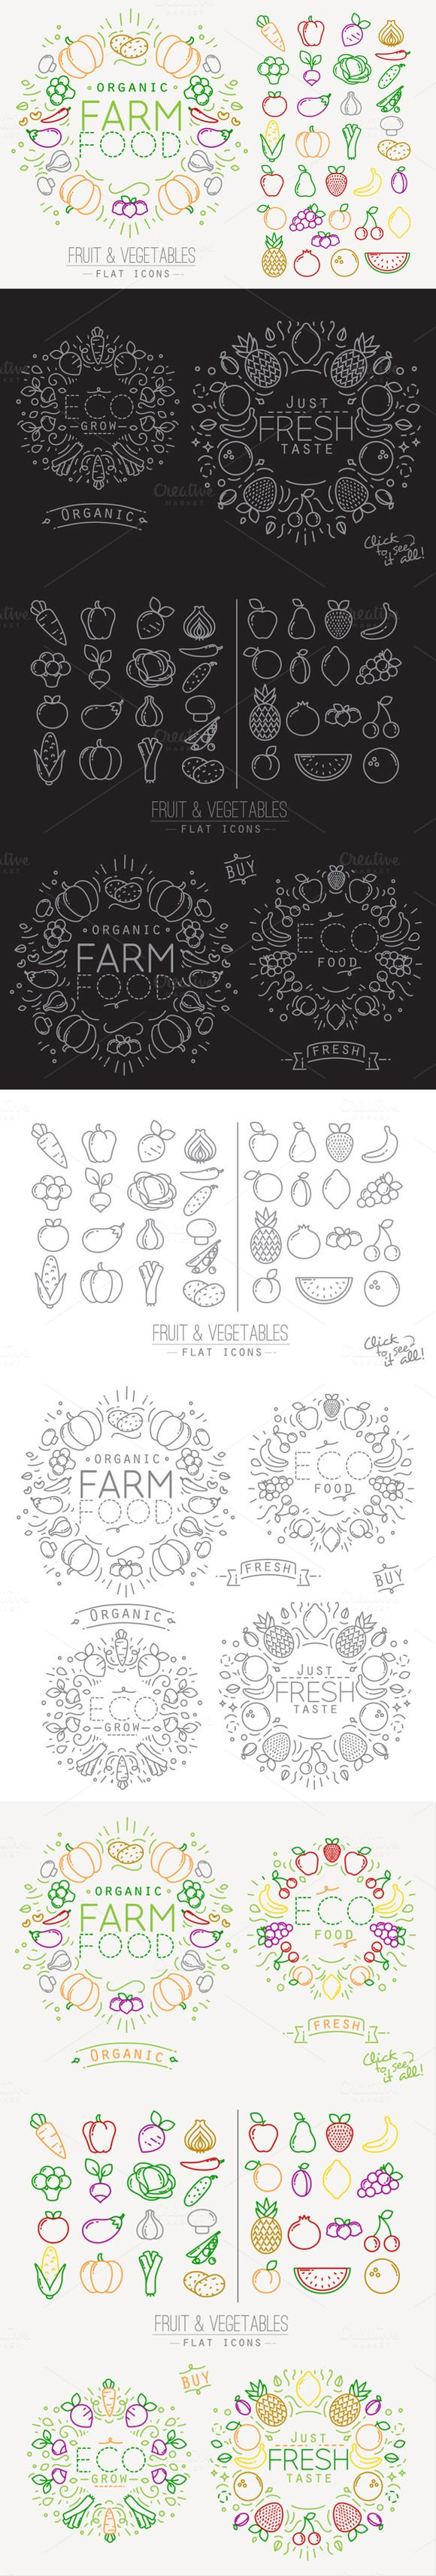 Flat Fruits & Vegetables Icons by Anna on Creative Market